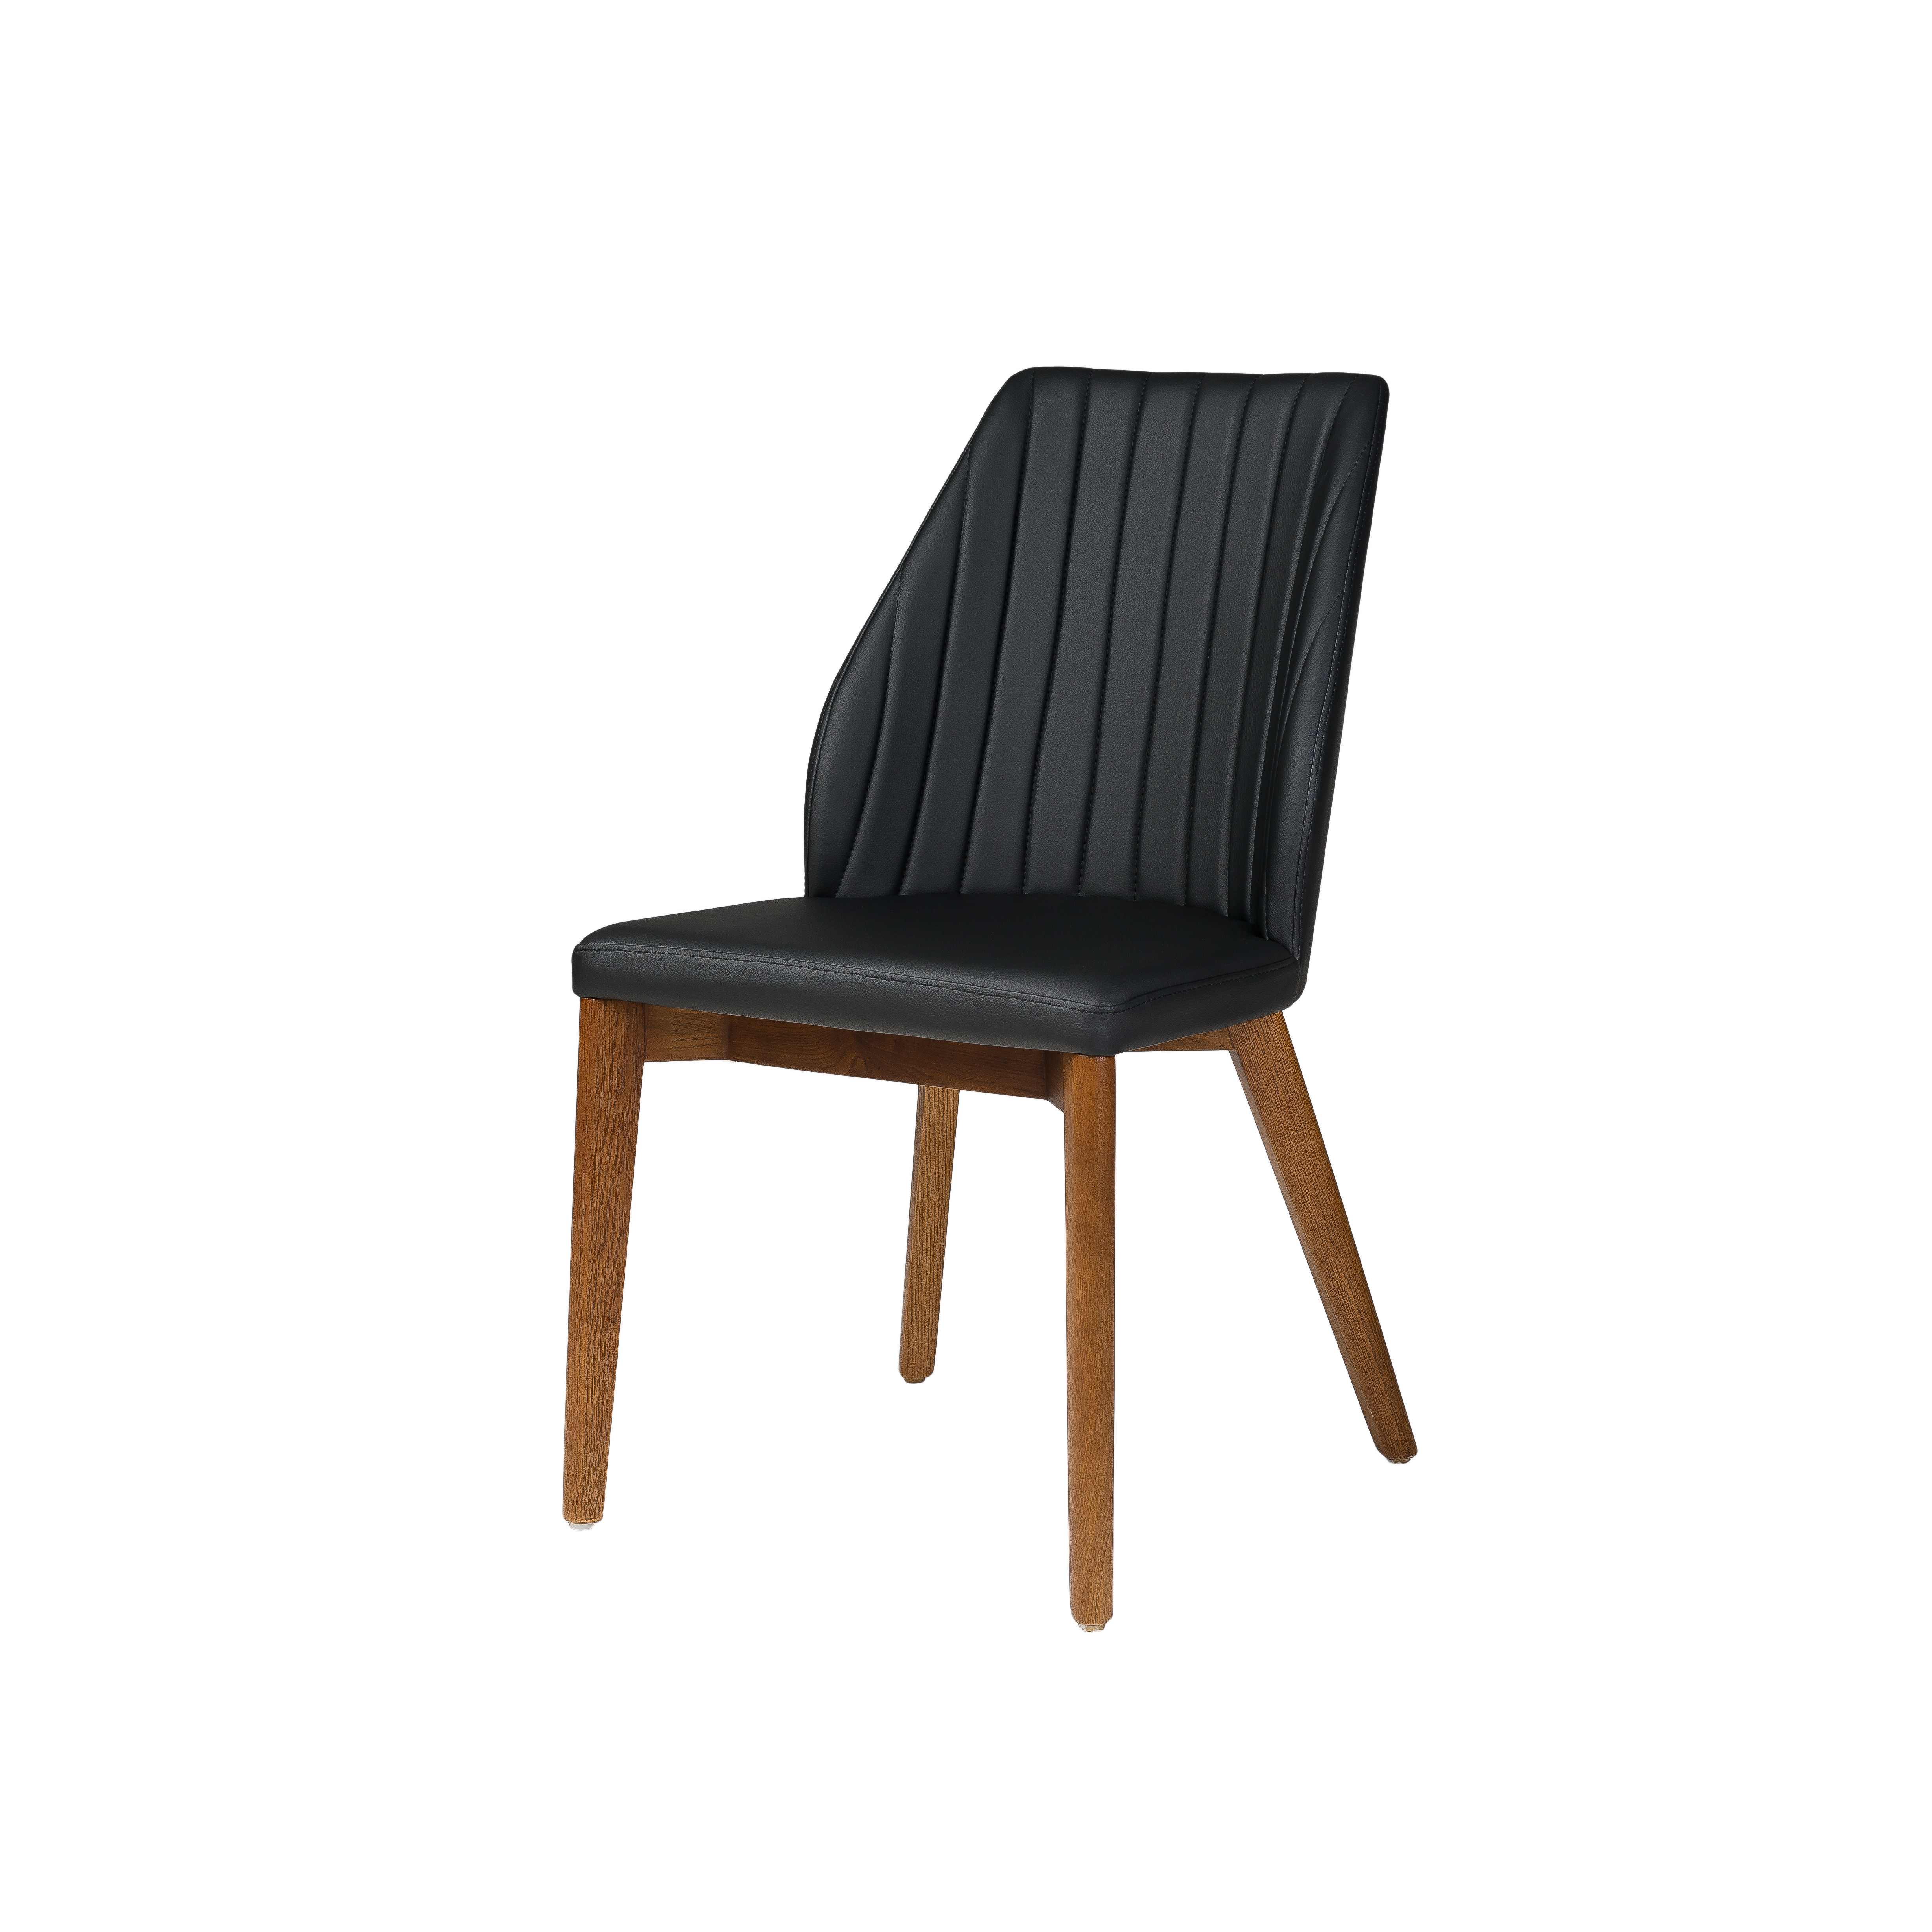 Totem dining chair mikaza meubles modernes montreal for Sofa cuir liquidation montreal